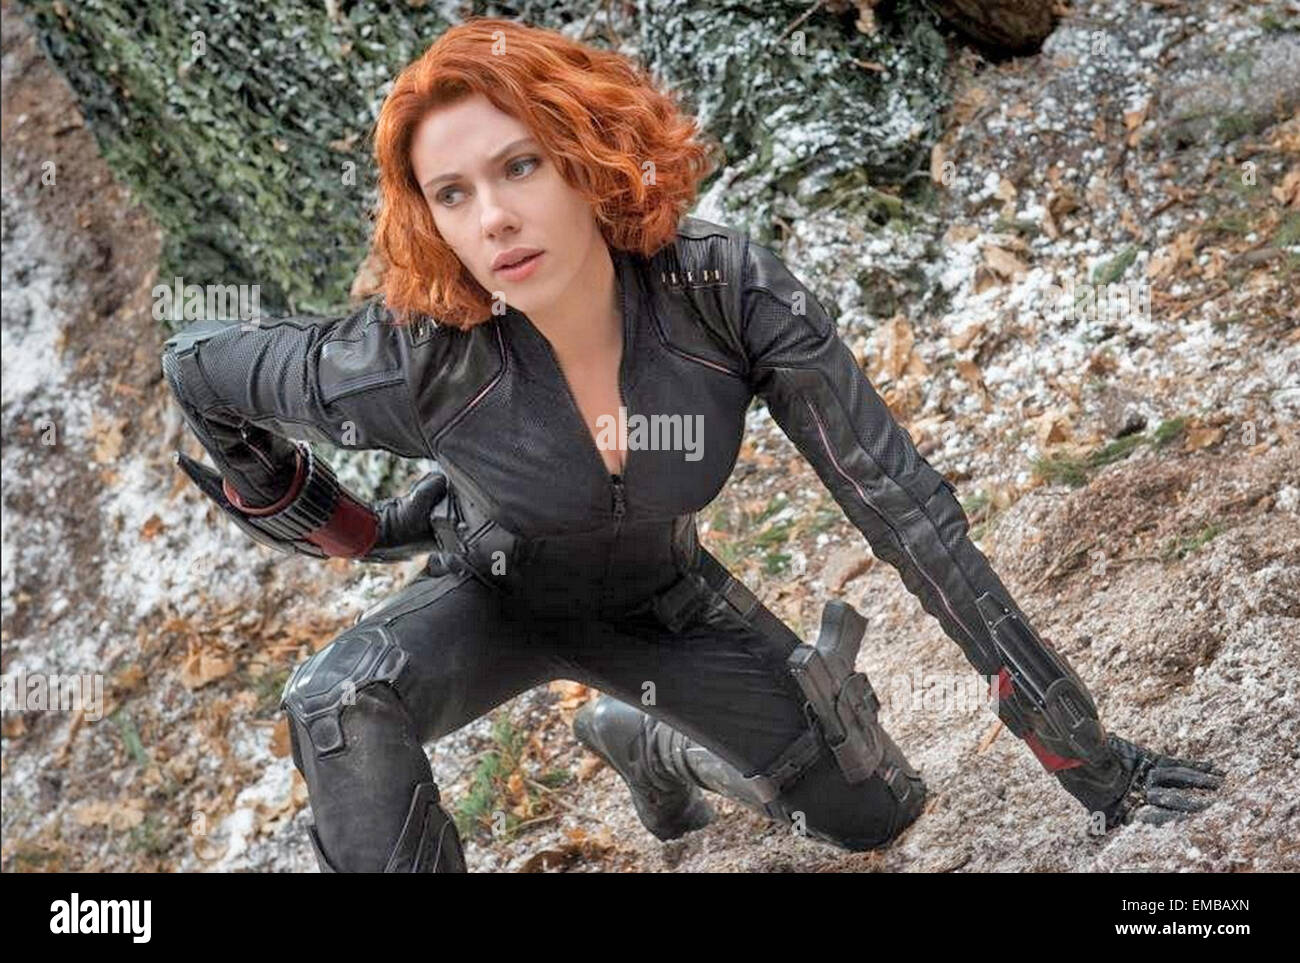 AVENGERS: AGE OF ULTRON 2015 Marvel film with Scarlett